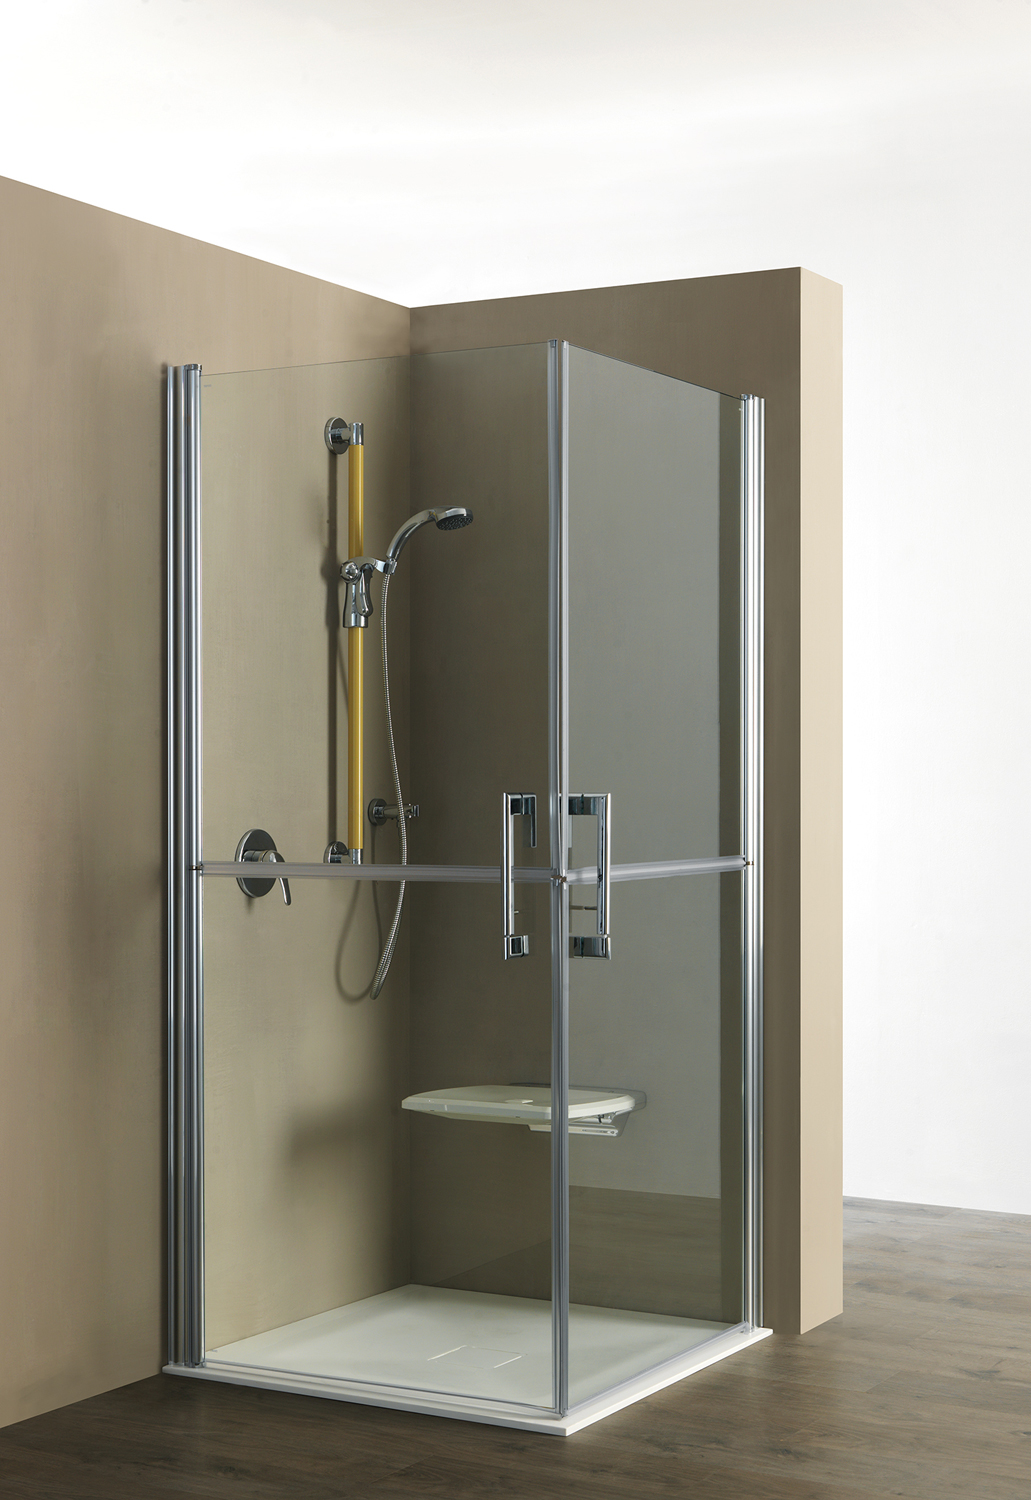 functional shower enclosure with door having a separate openings